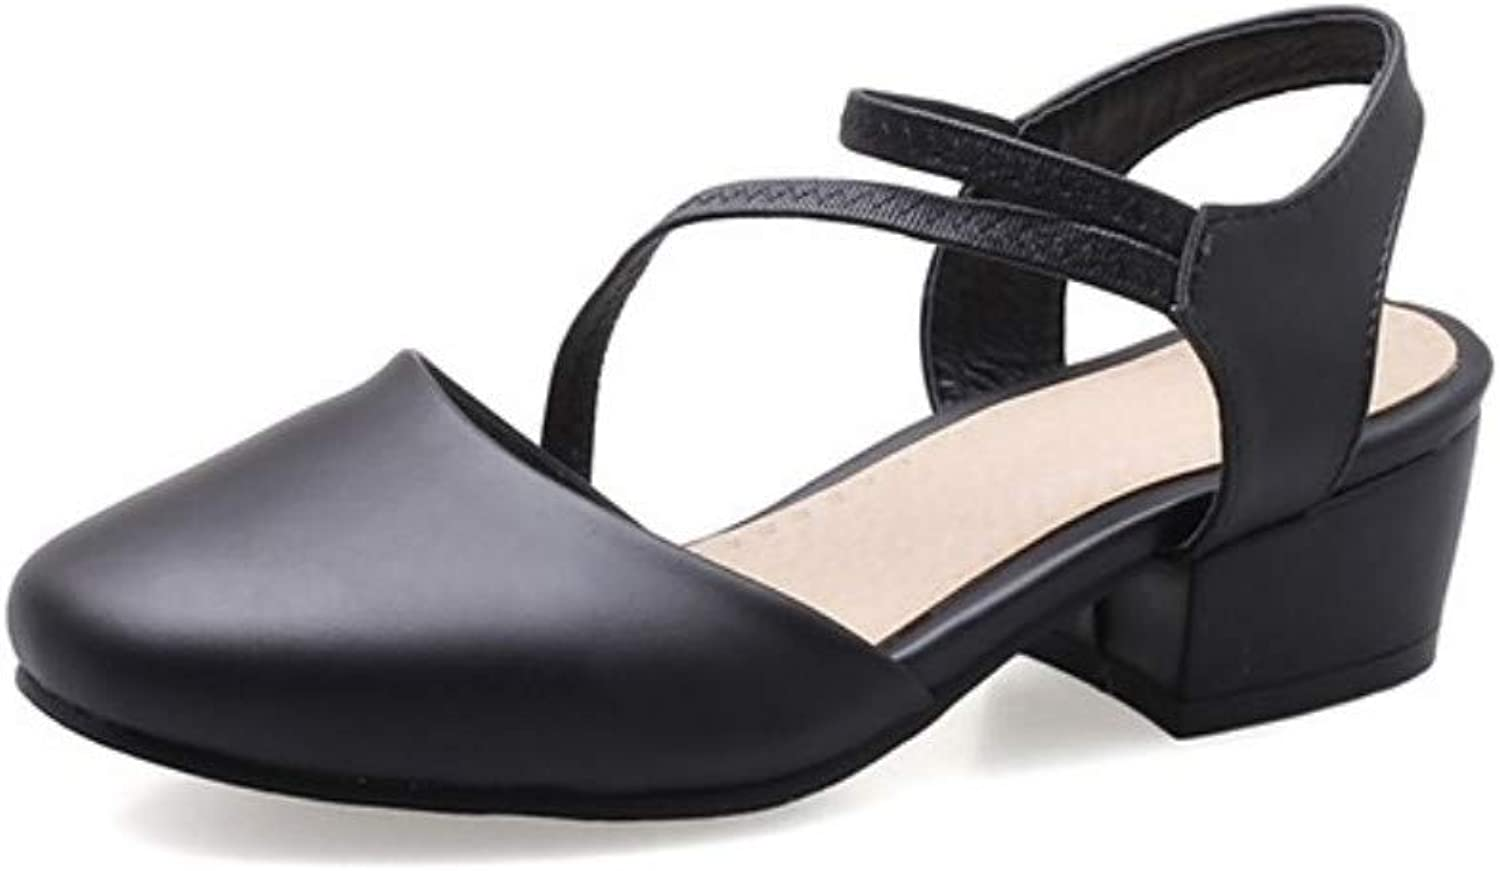 IWlxz Women's shoes Leatherette Summer D'Orsay & Two-Piece Sandals Low Heel Round Toe Black Beige Pink